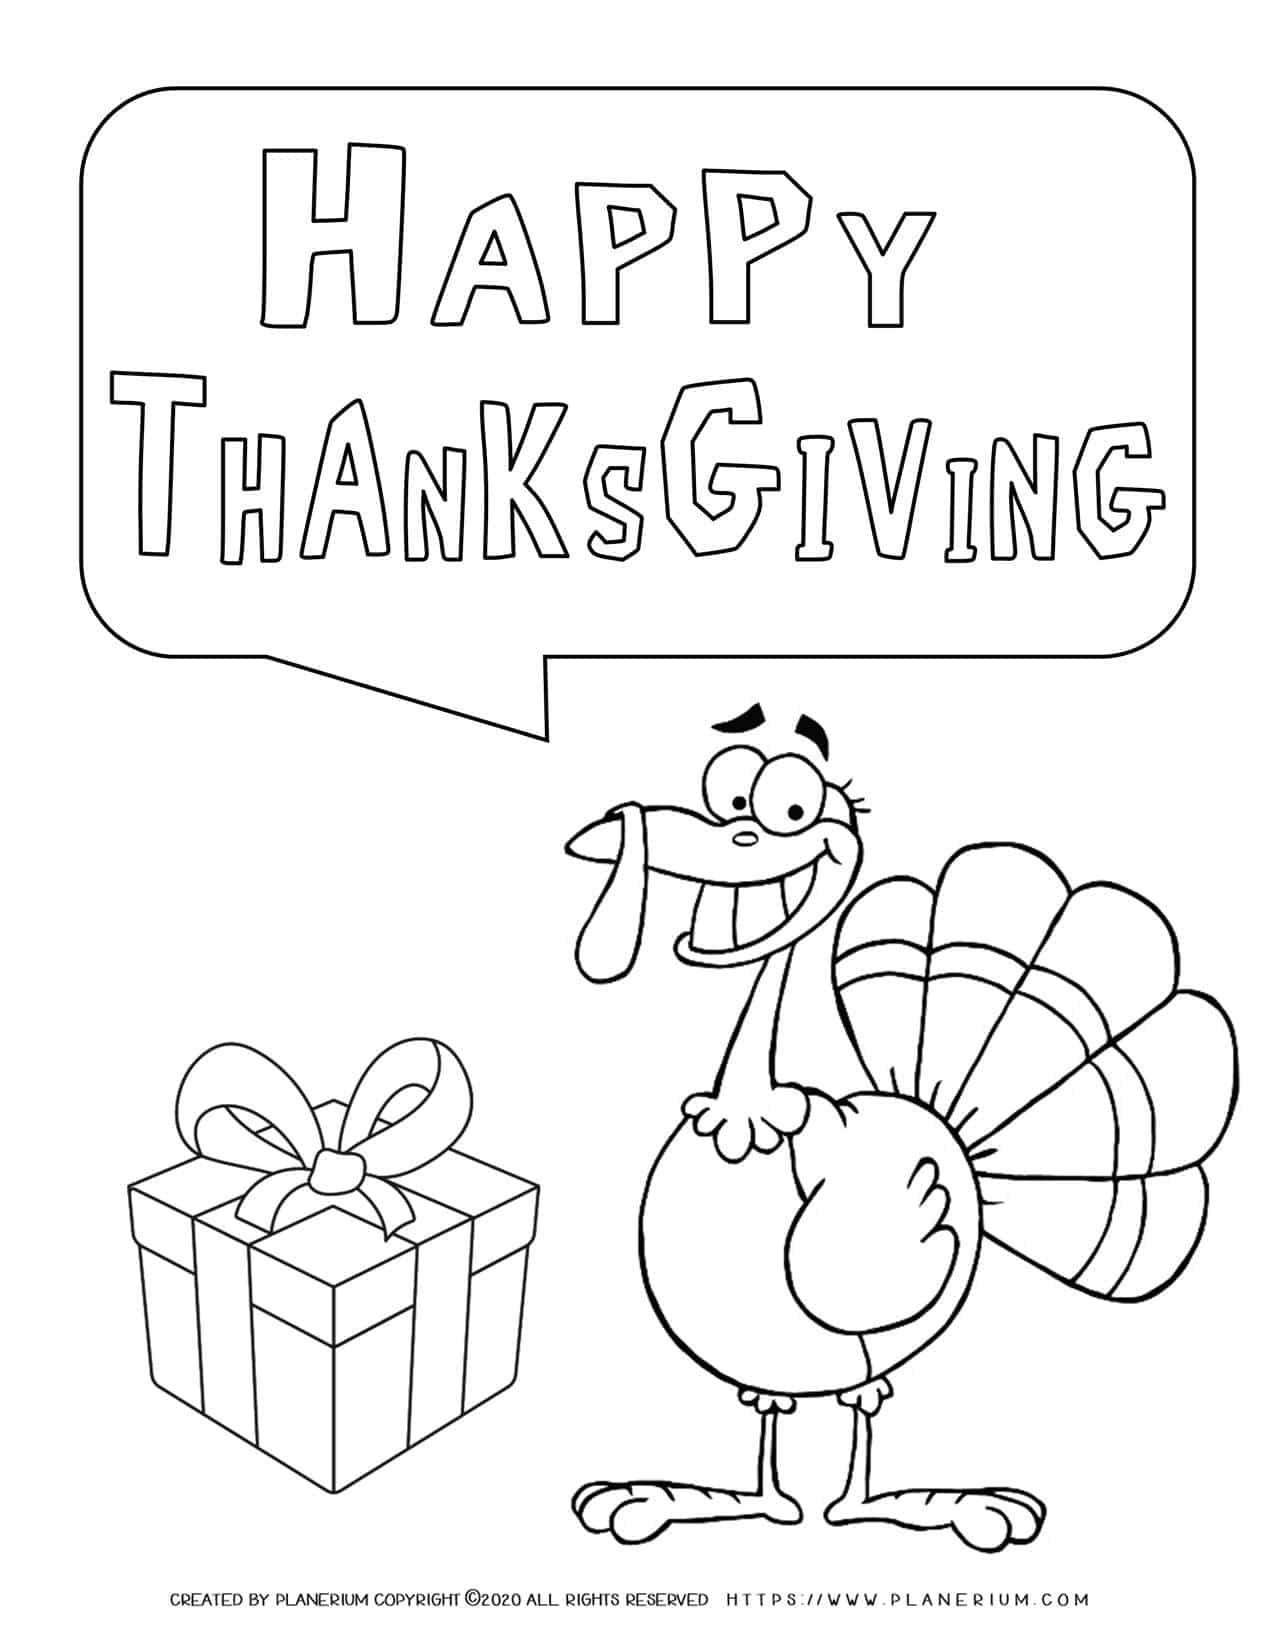 Happy Thanksgiving - Smiling Turkey - Coloring Page   Planerium